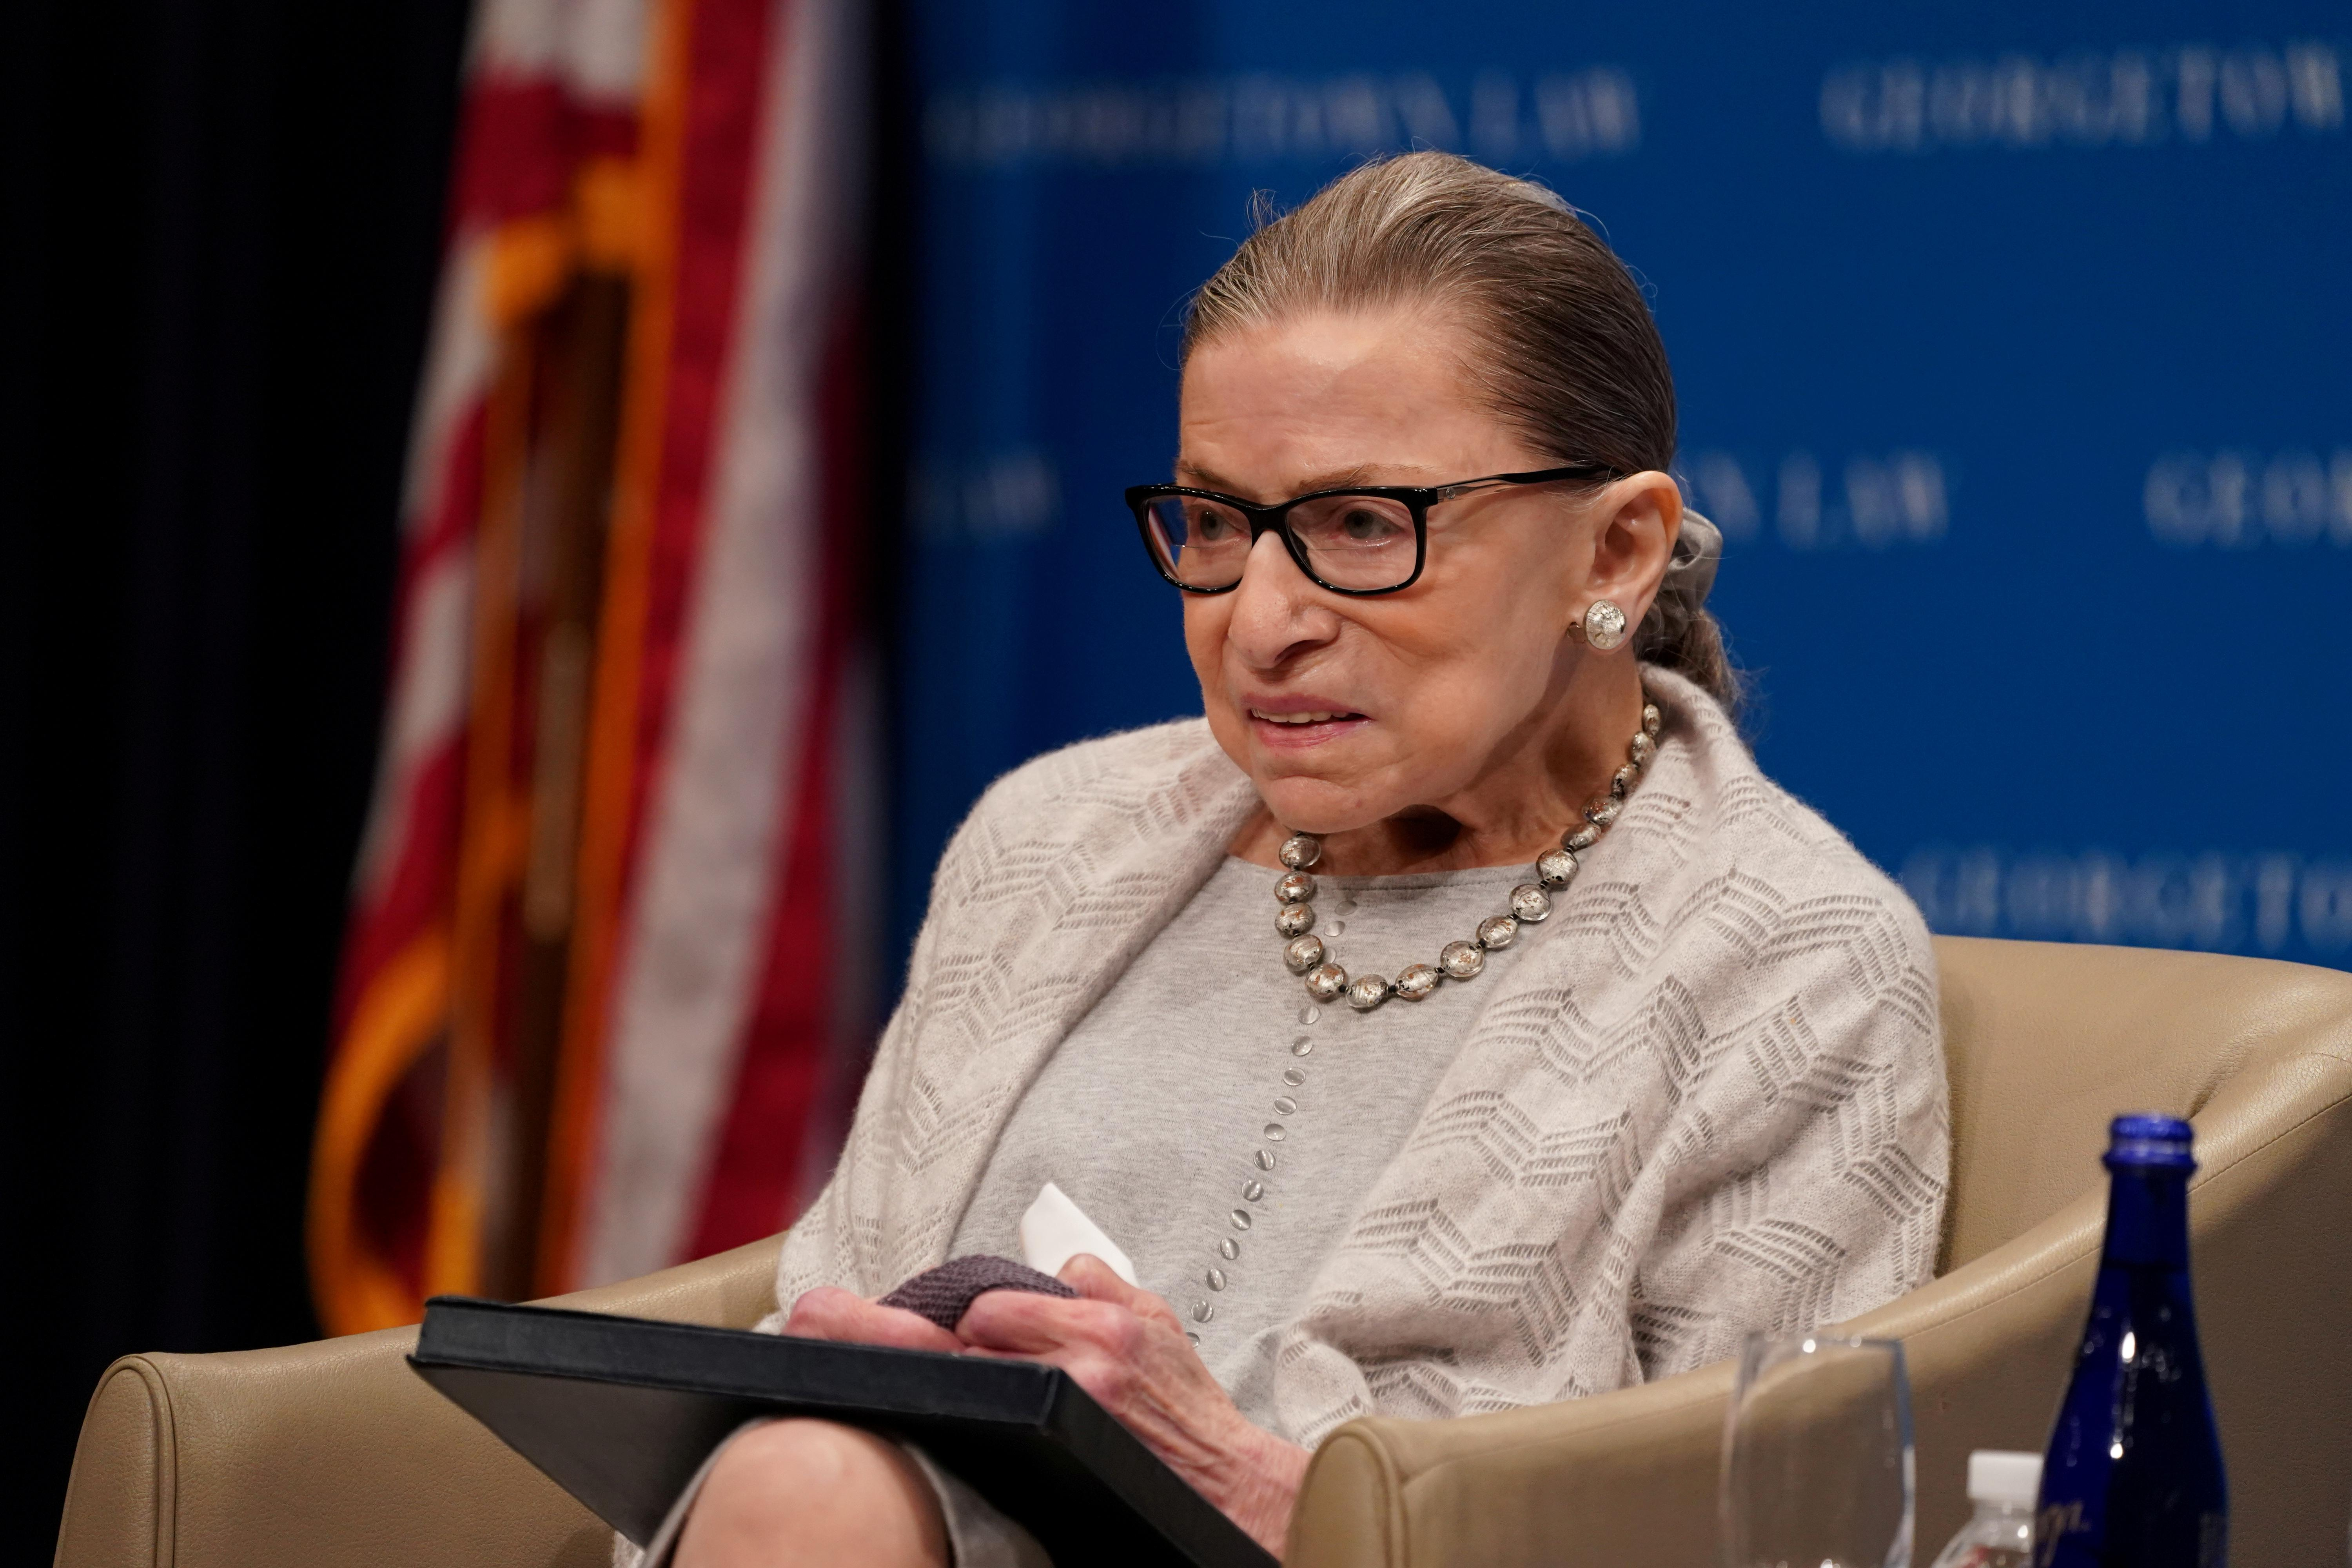 Justice Ginsburg in hospital, but expected to be released soon